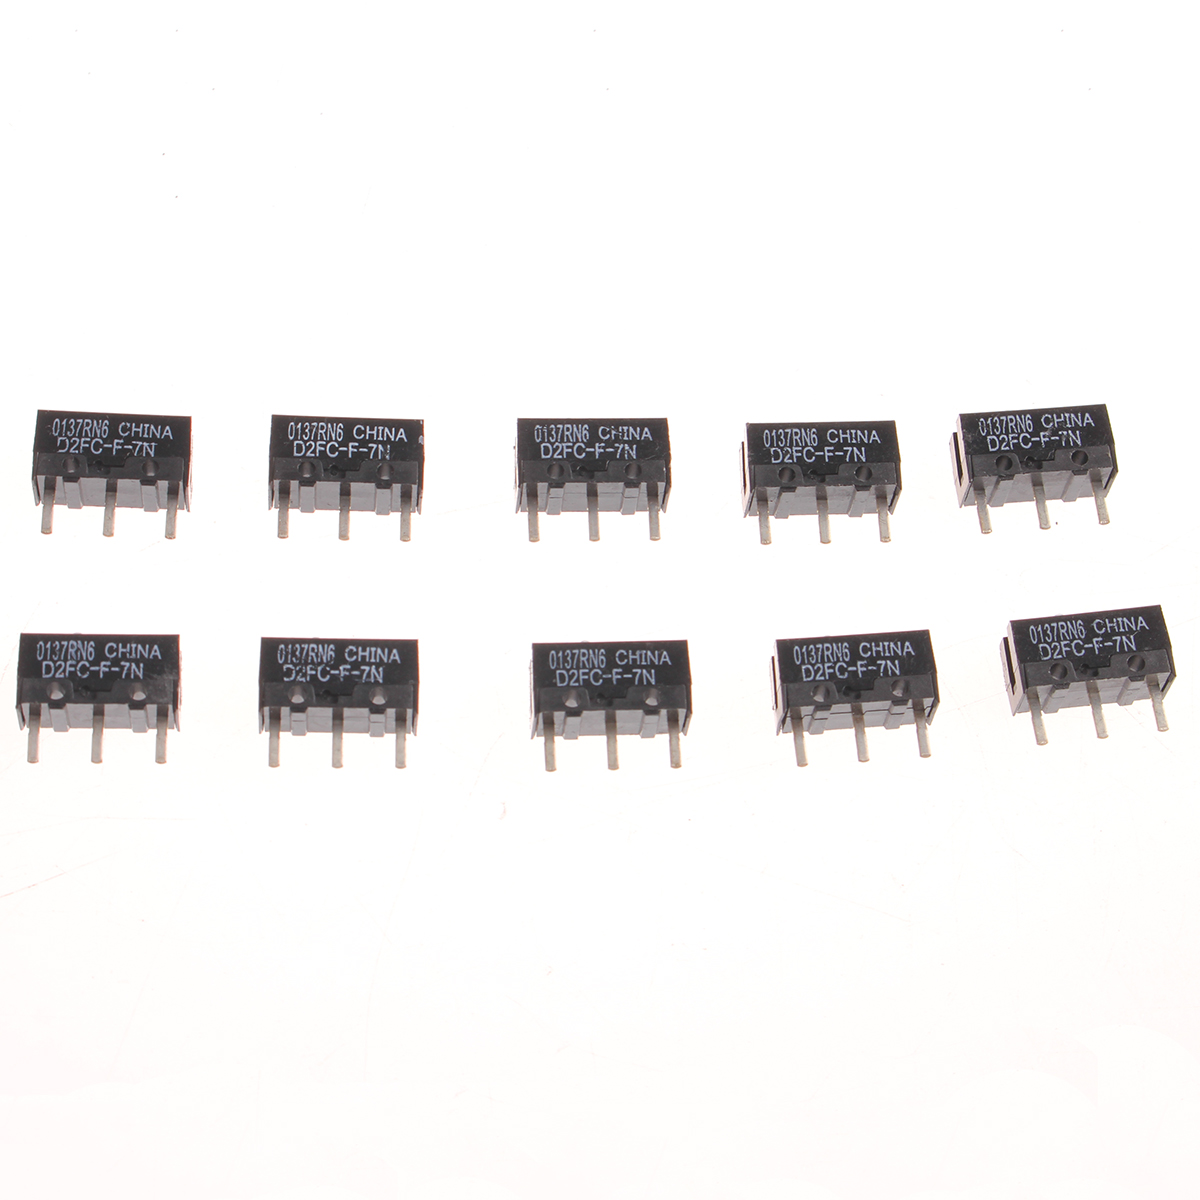 10M for Logitech Microsoft Button 5Pcs Omron Mouse Micro Switch D2FC-F-7N